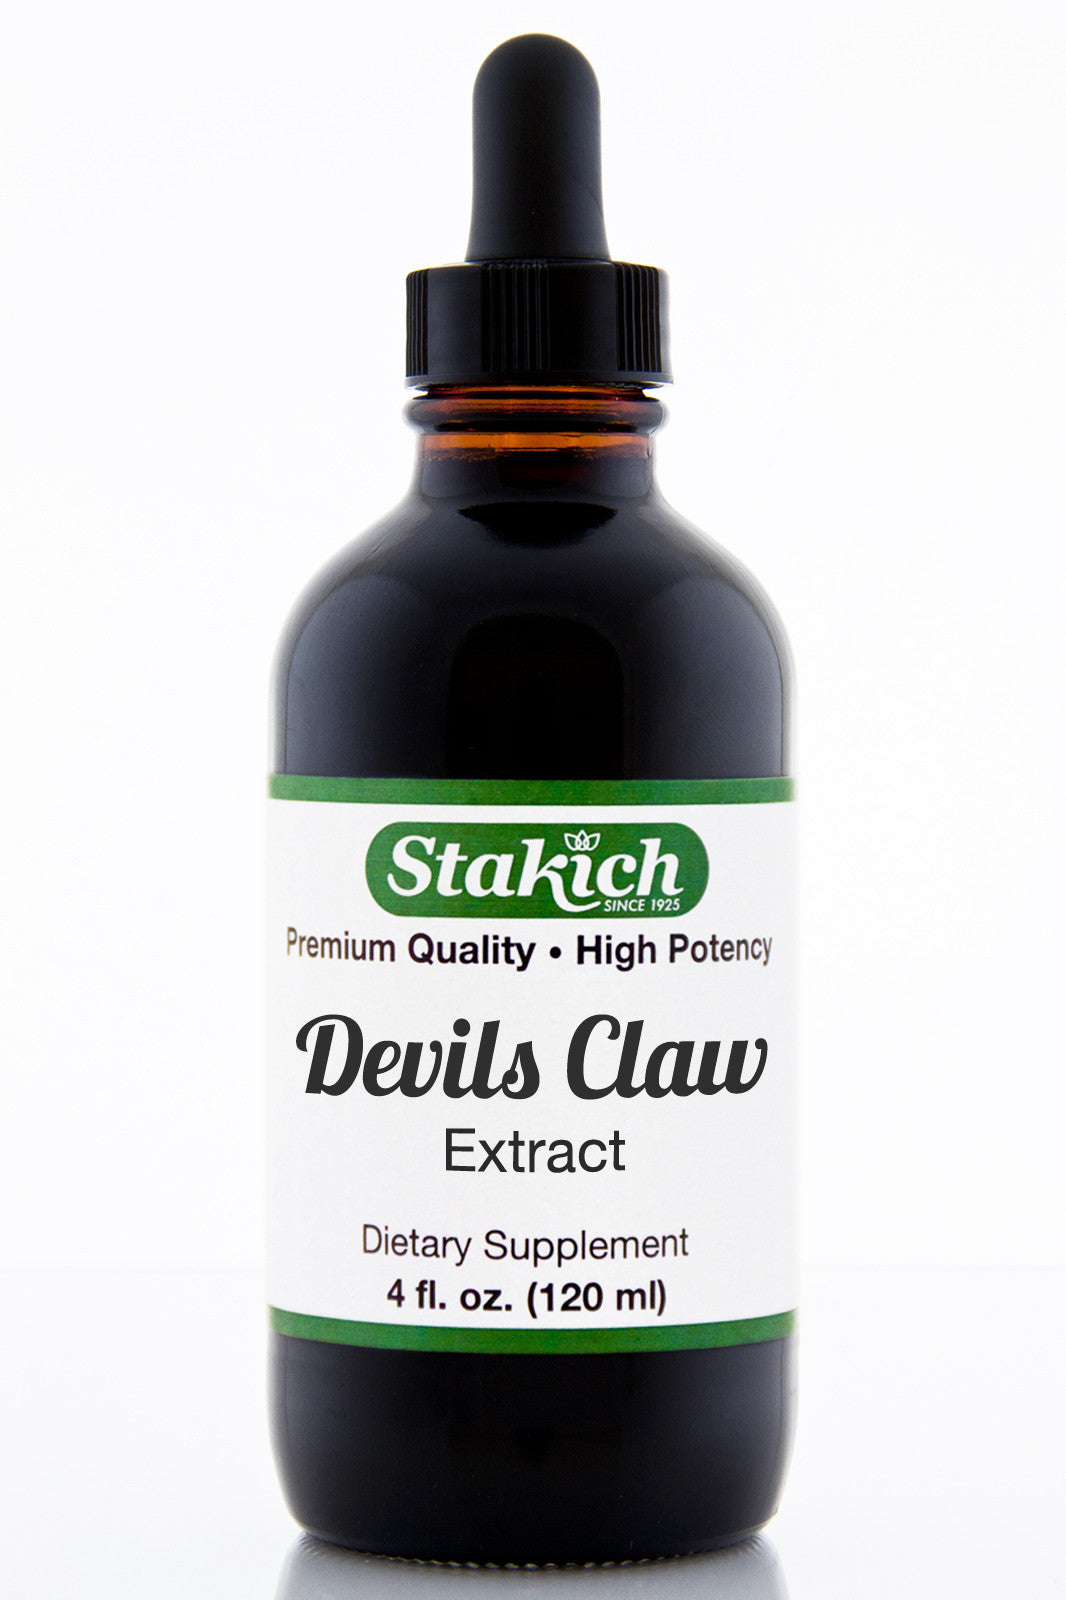 Devil's Claw Extract